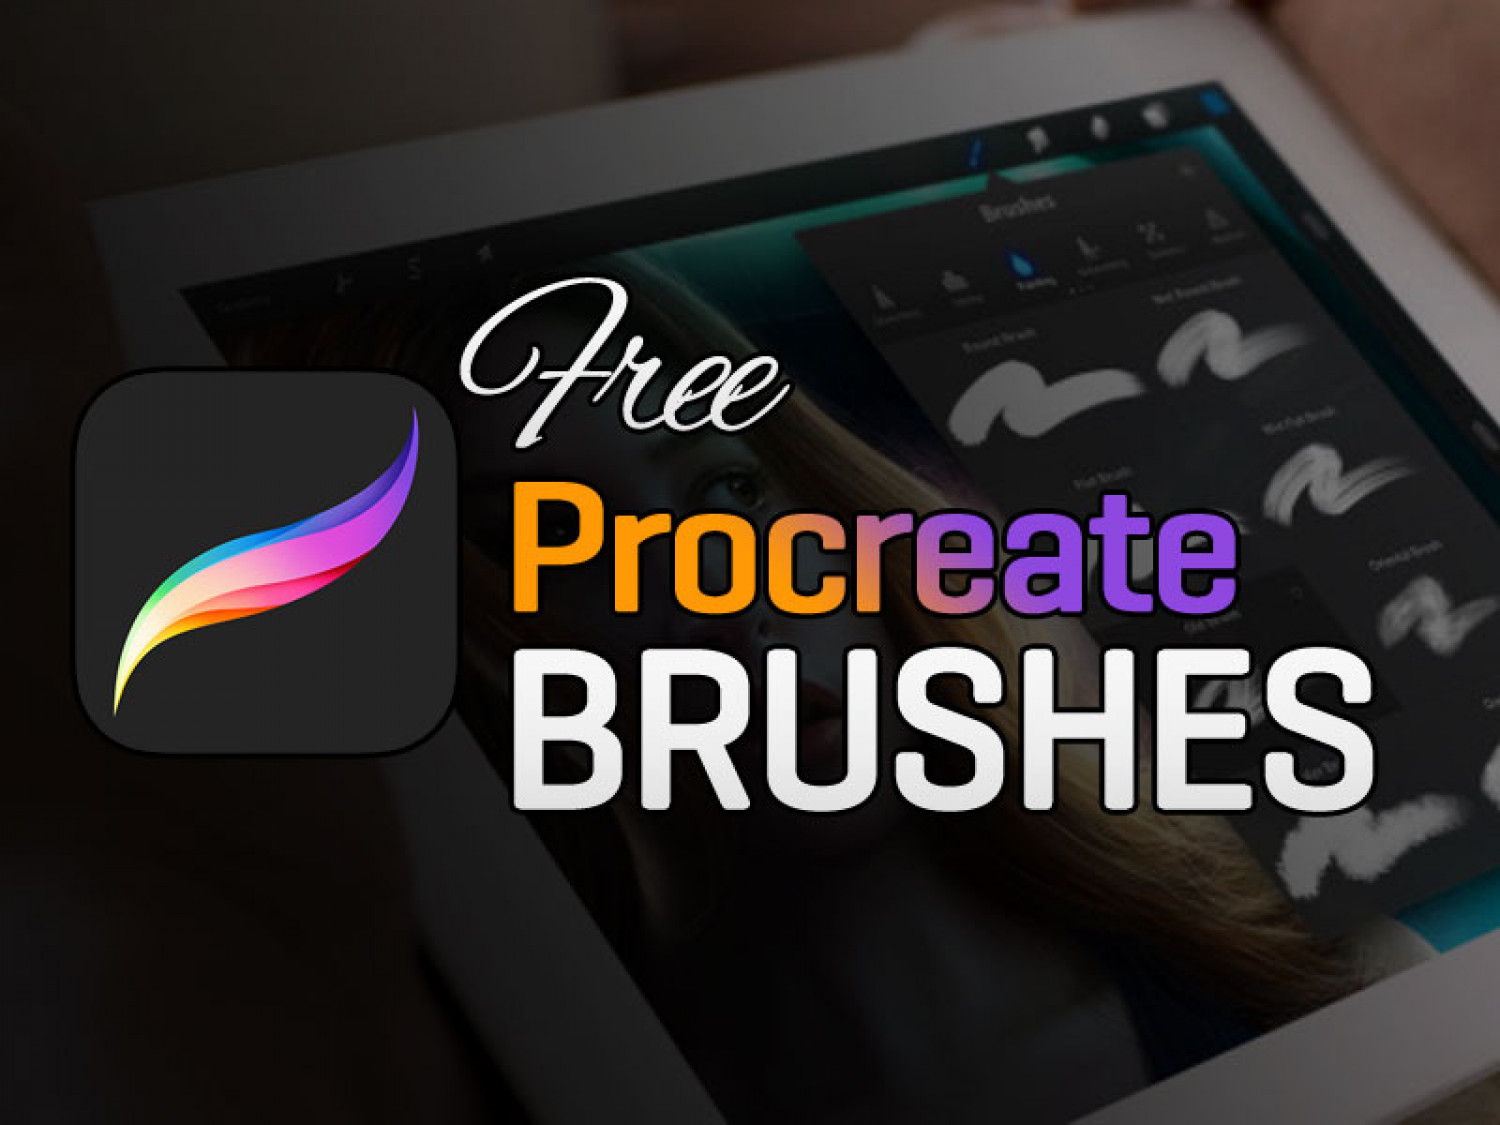 Free Procreate Brushes Infographic